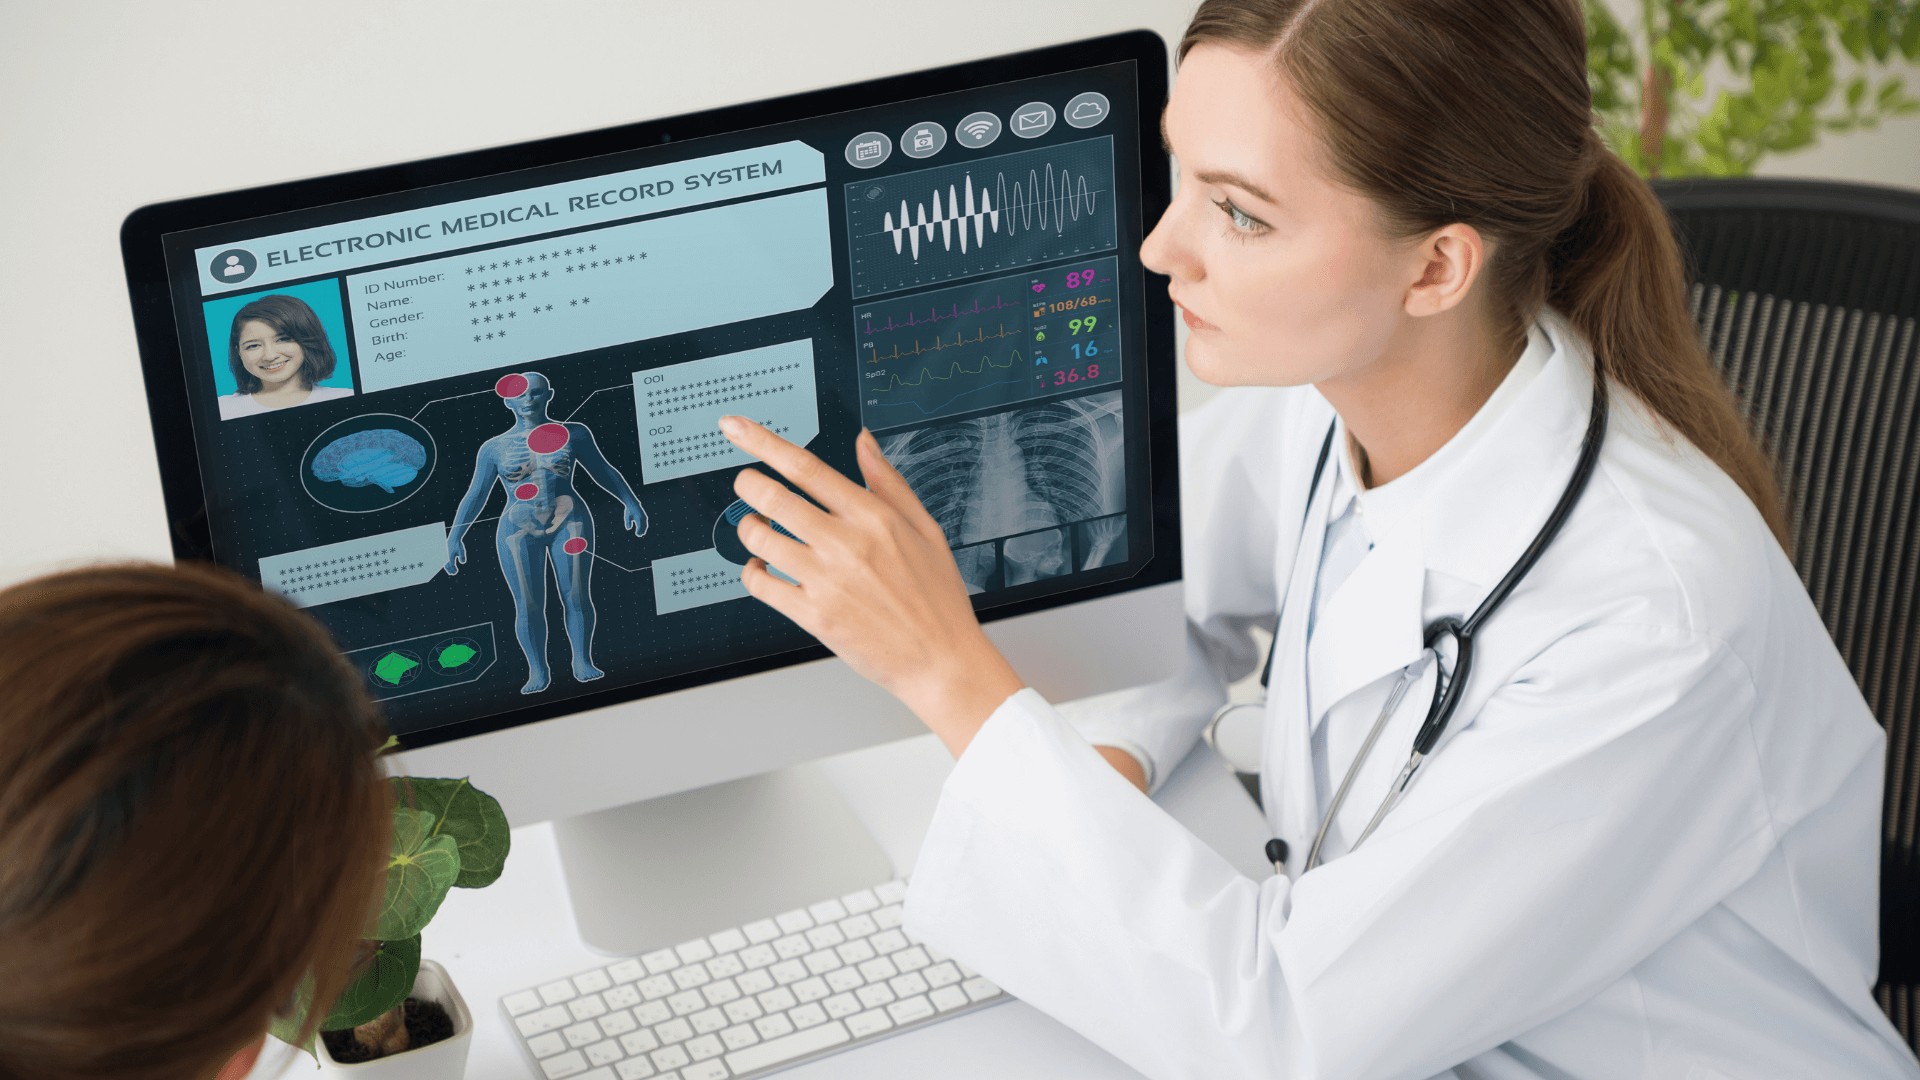 Electronic medical record system